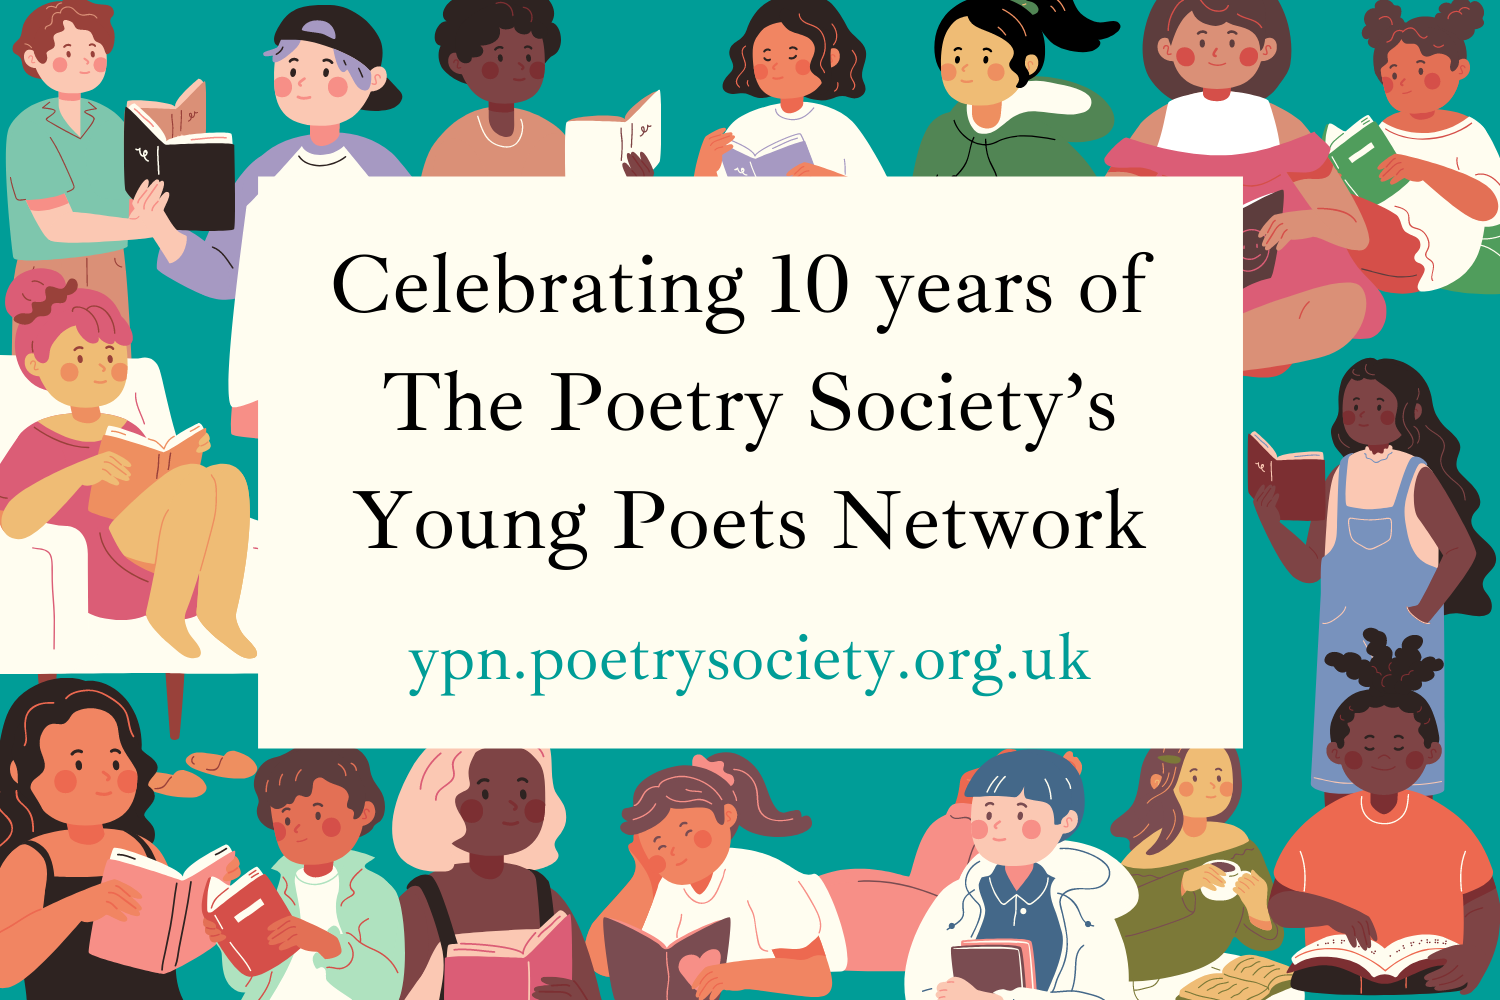 Celebrating 10 years of The Poetry Society's Young Poets Network ypn.poetrysociety.org.uk